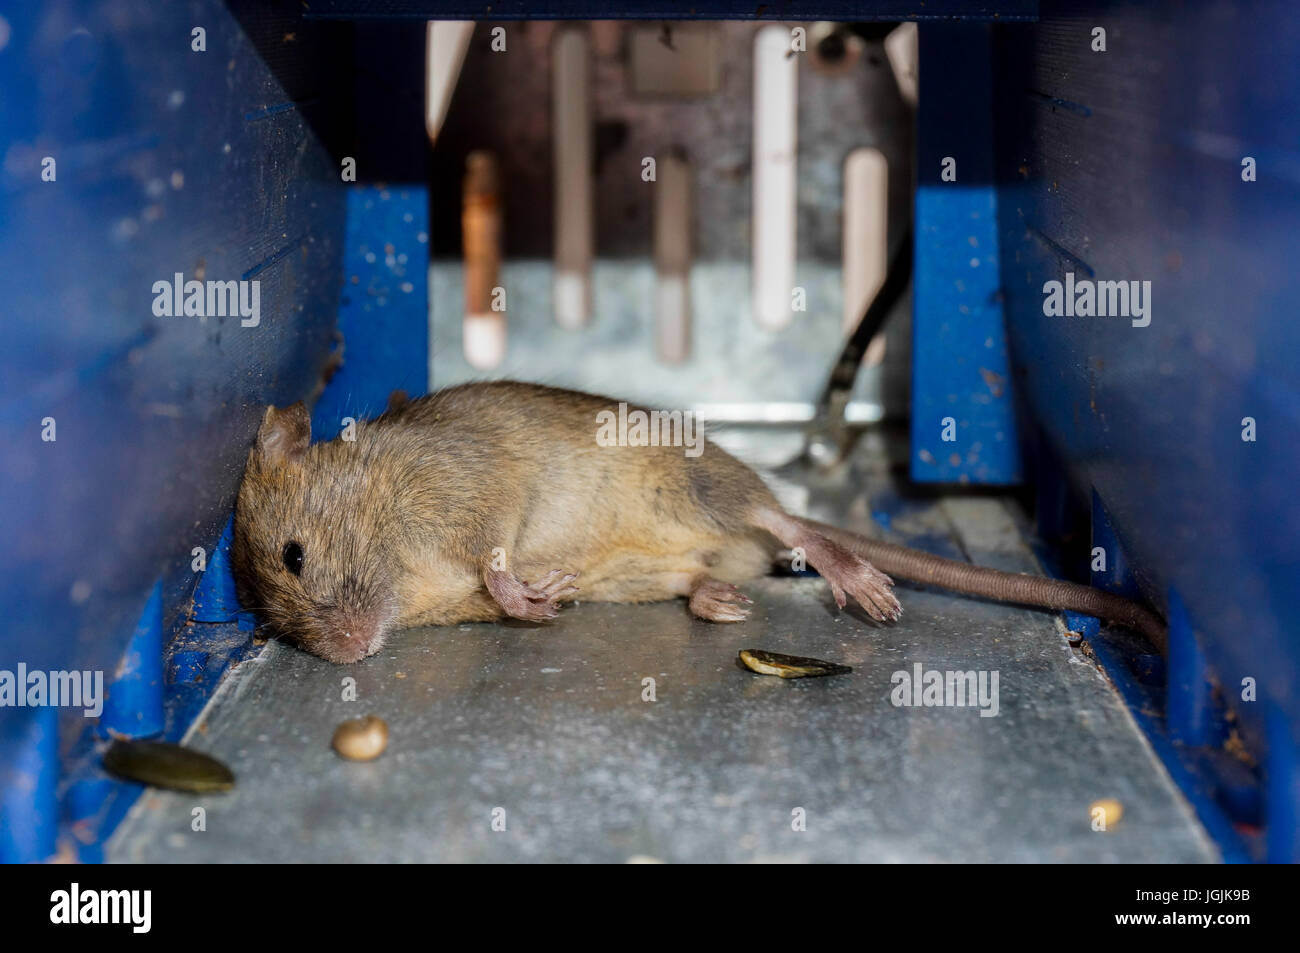 A dead mouse in a small, battery powered trap, killed by electric shock, with the grain bait on the floor. - Stock Image